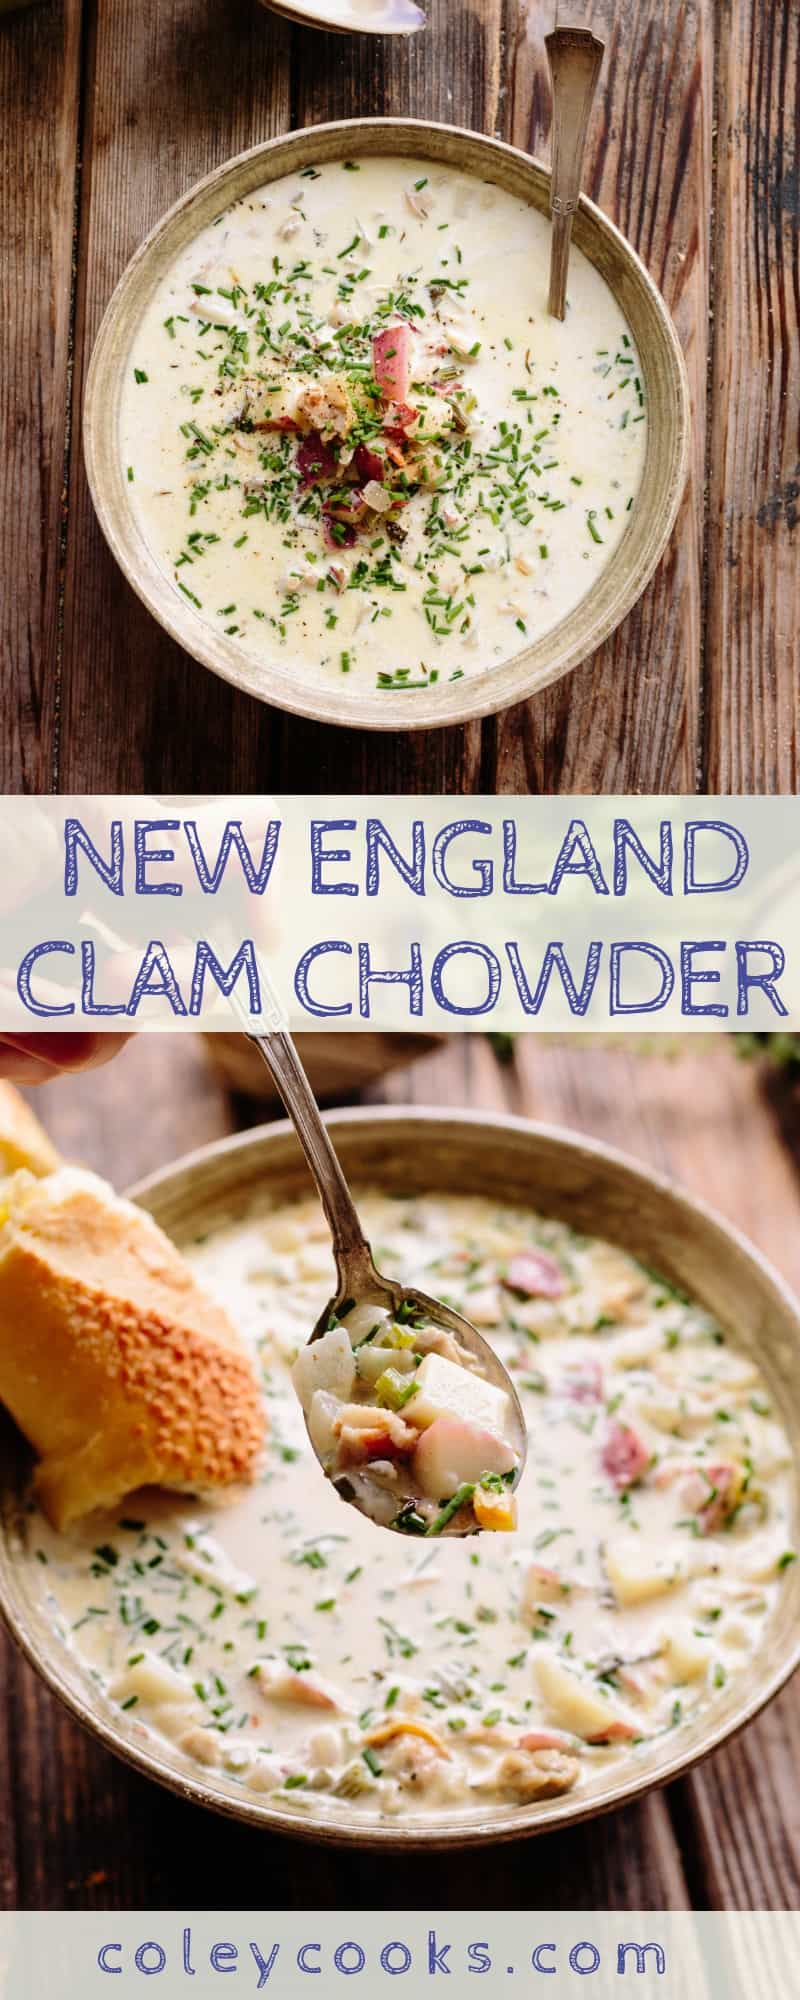 NEW ENGLAND CLAM CHOWDER | Simple, Classic, Delicious chowder recipe that's not overly thickened. A light cream base with lots of fresh clams, bacon potatoes and herbs. #newengland #clam #chowder #recipe #soup | ColeyCooks.com